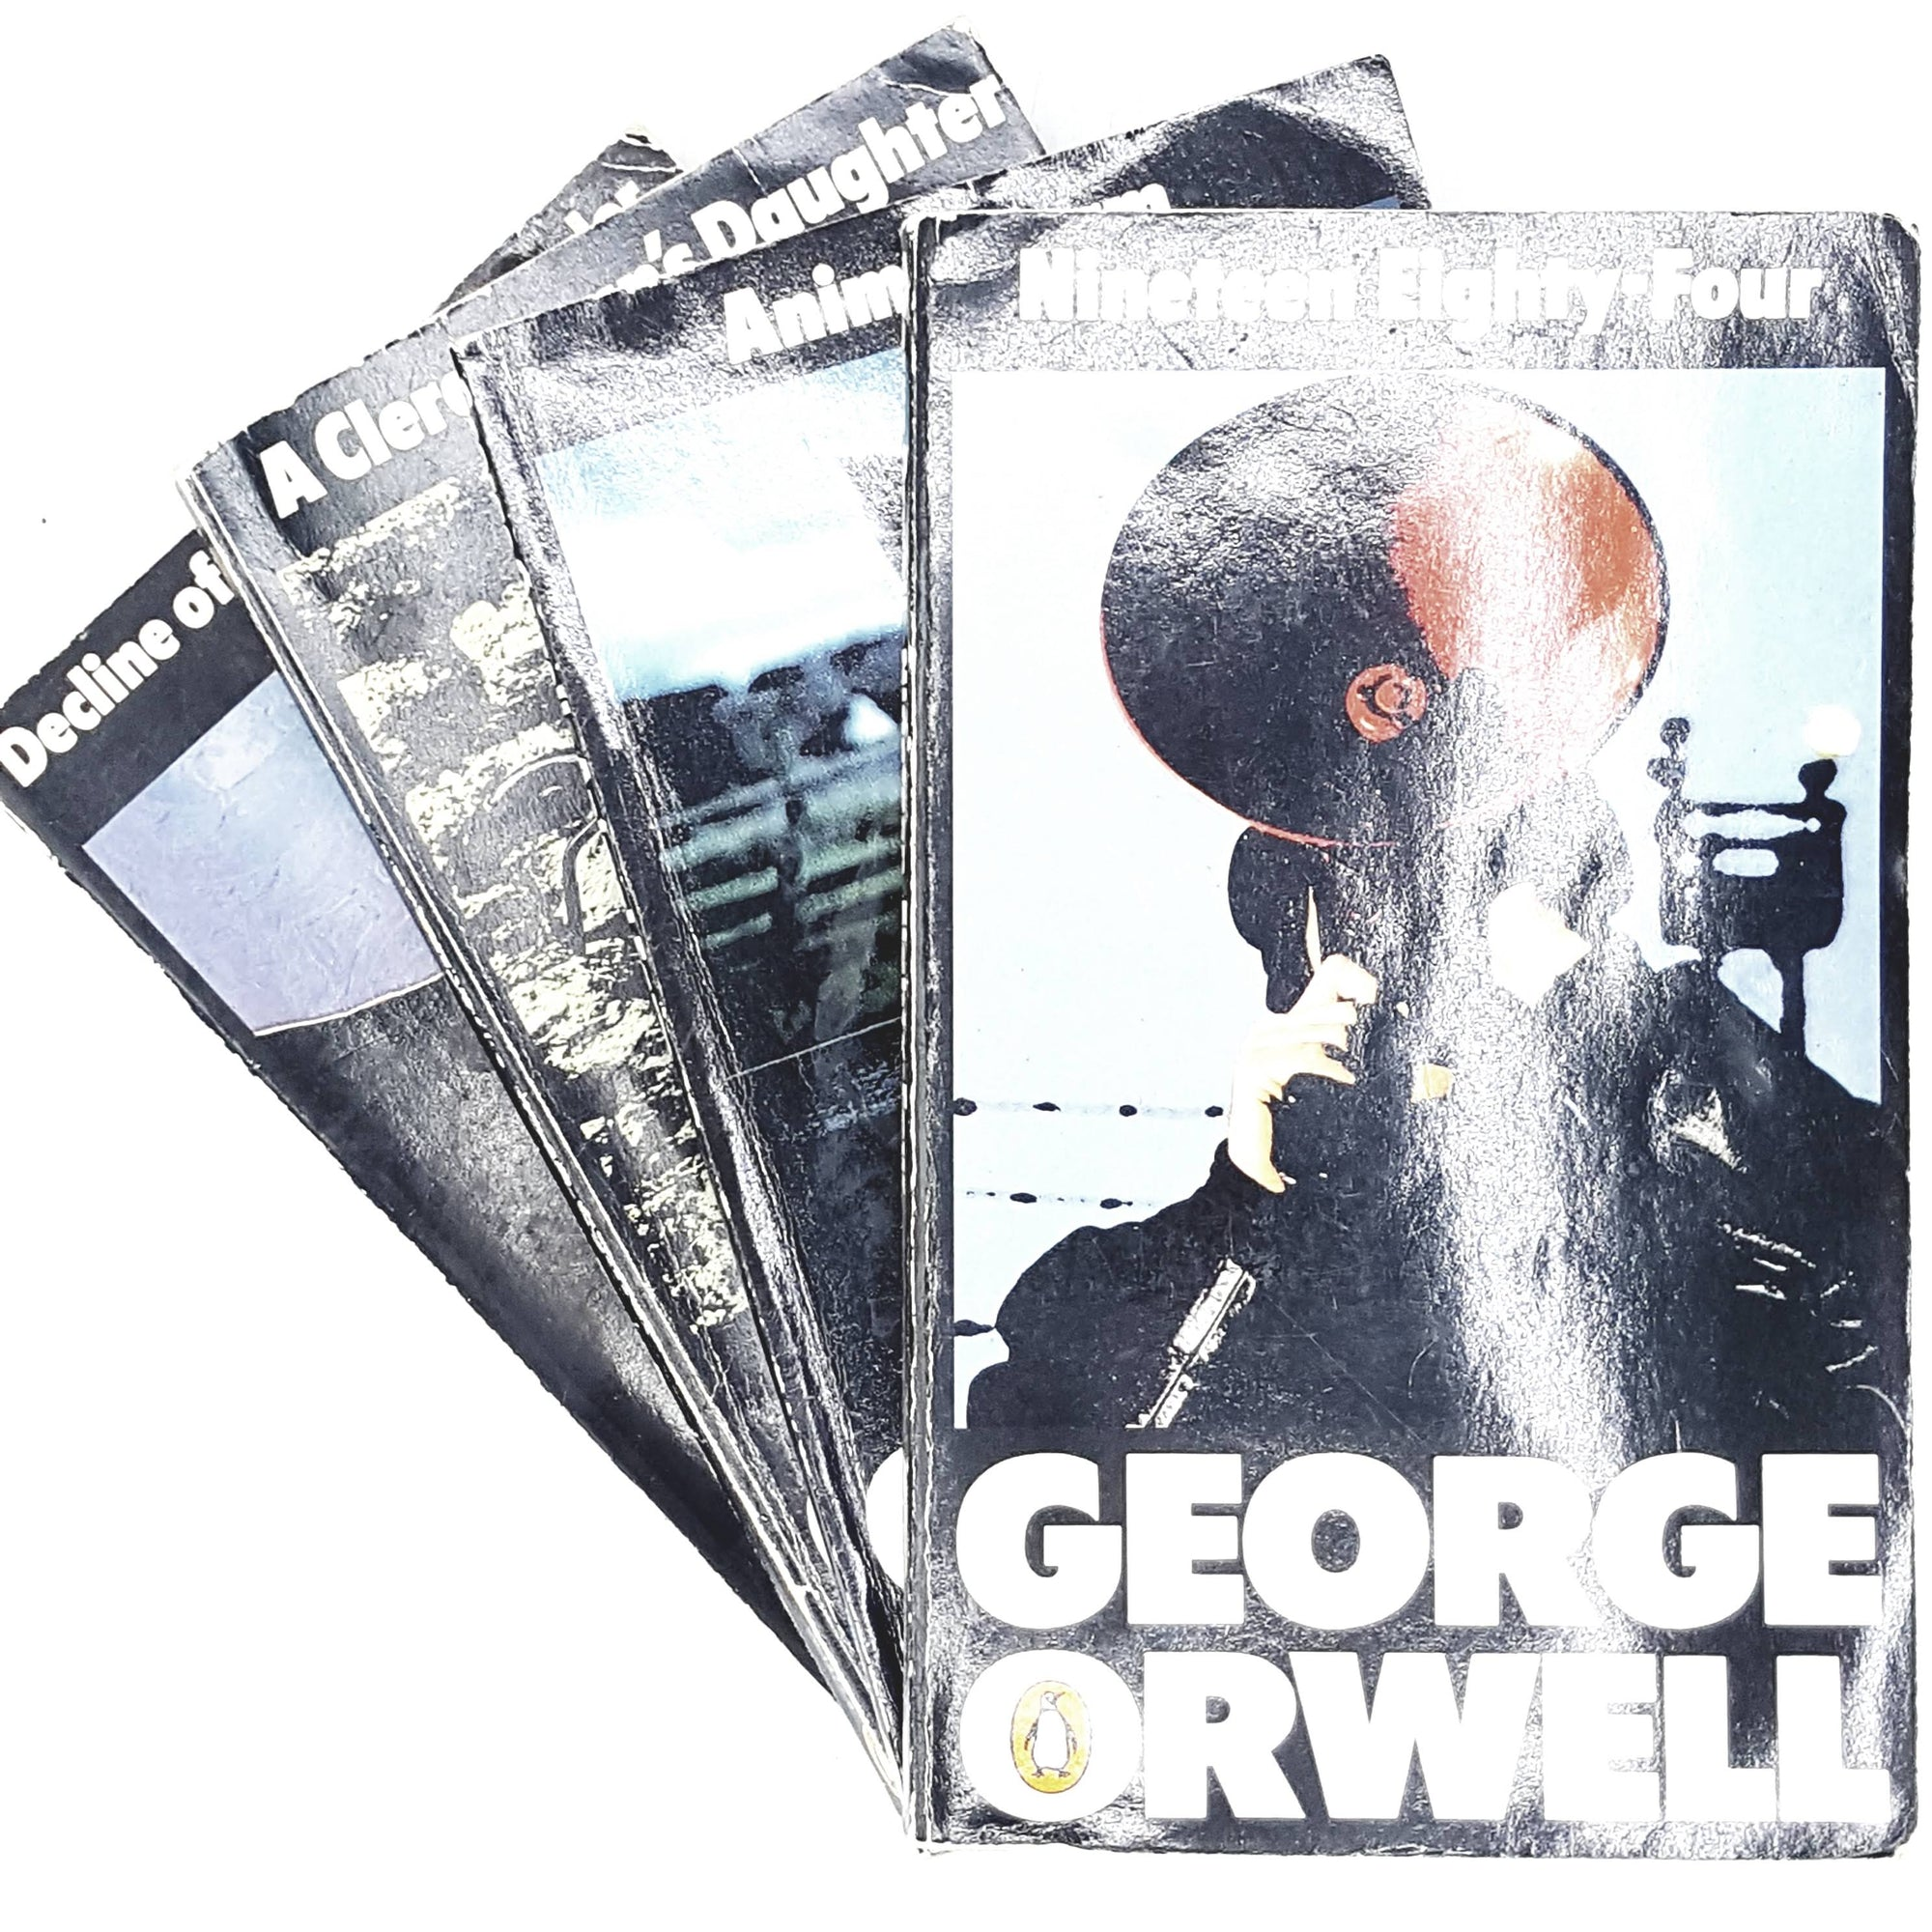 Collection George Orwell set 1975 - 1983